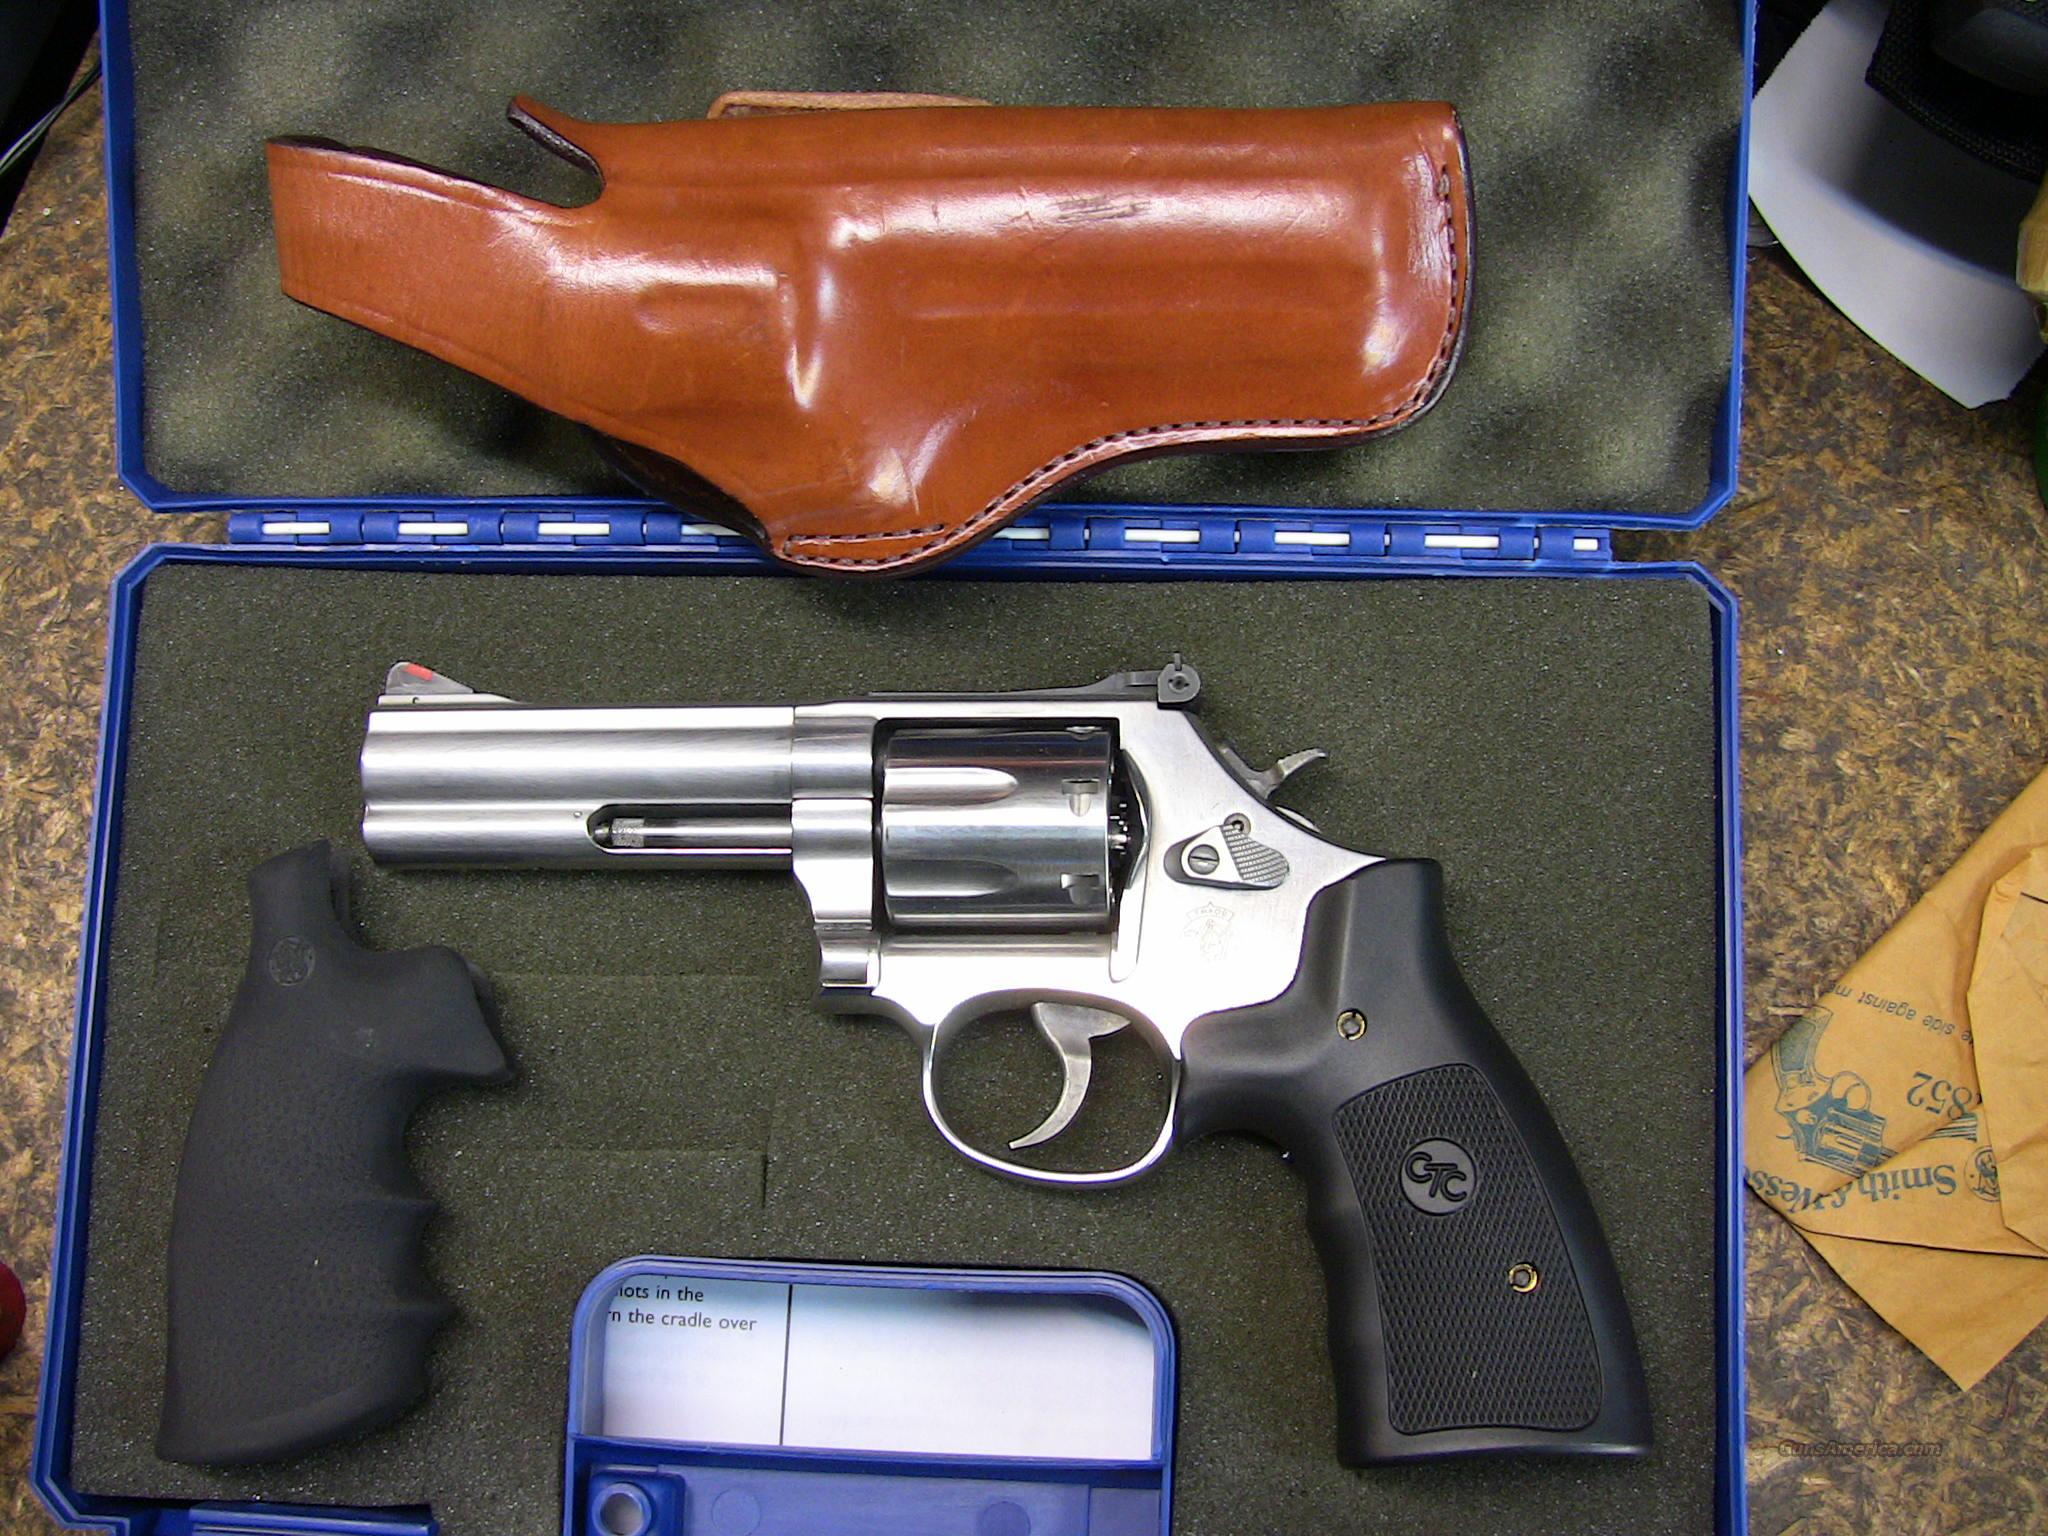 Model 686 7-shot 4 inch with Crimson Trace Grip  Guns > Pistols > Smith & Wesson Revolvers > Full Frame Revolver